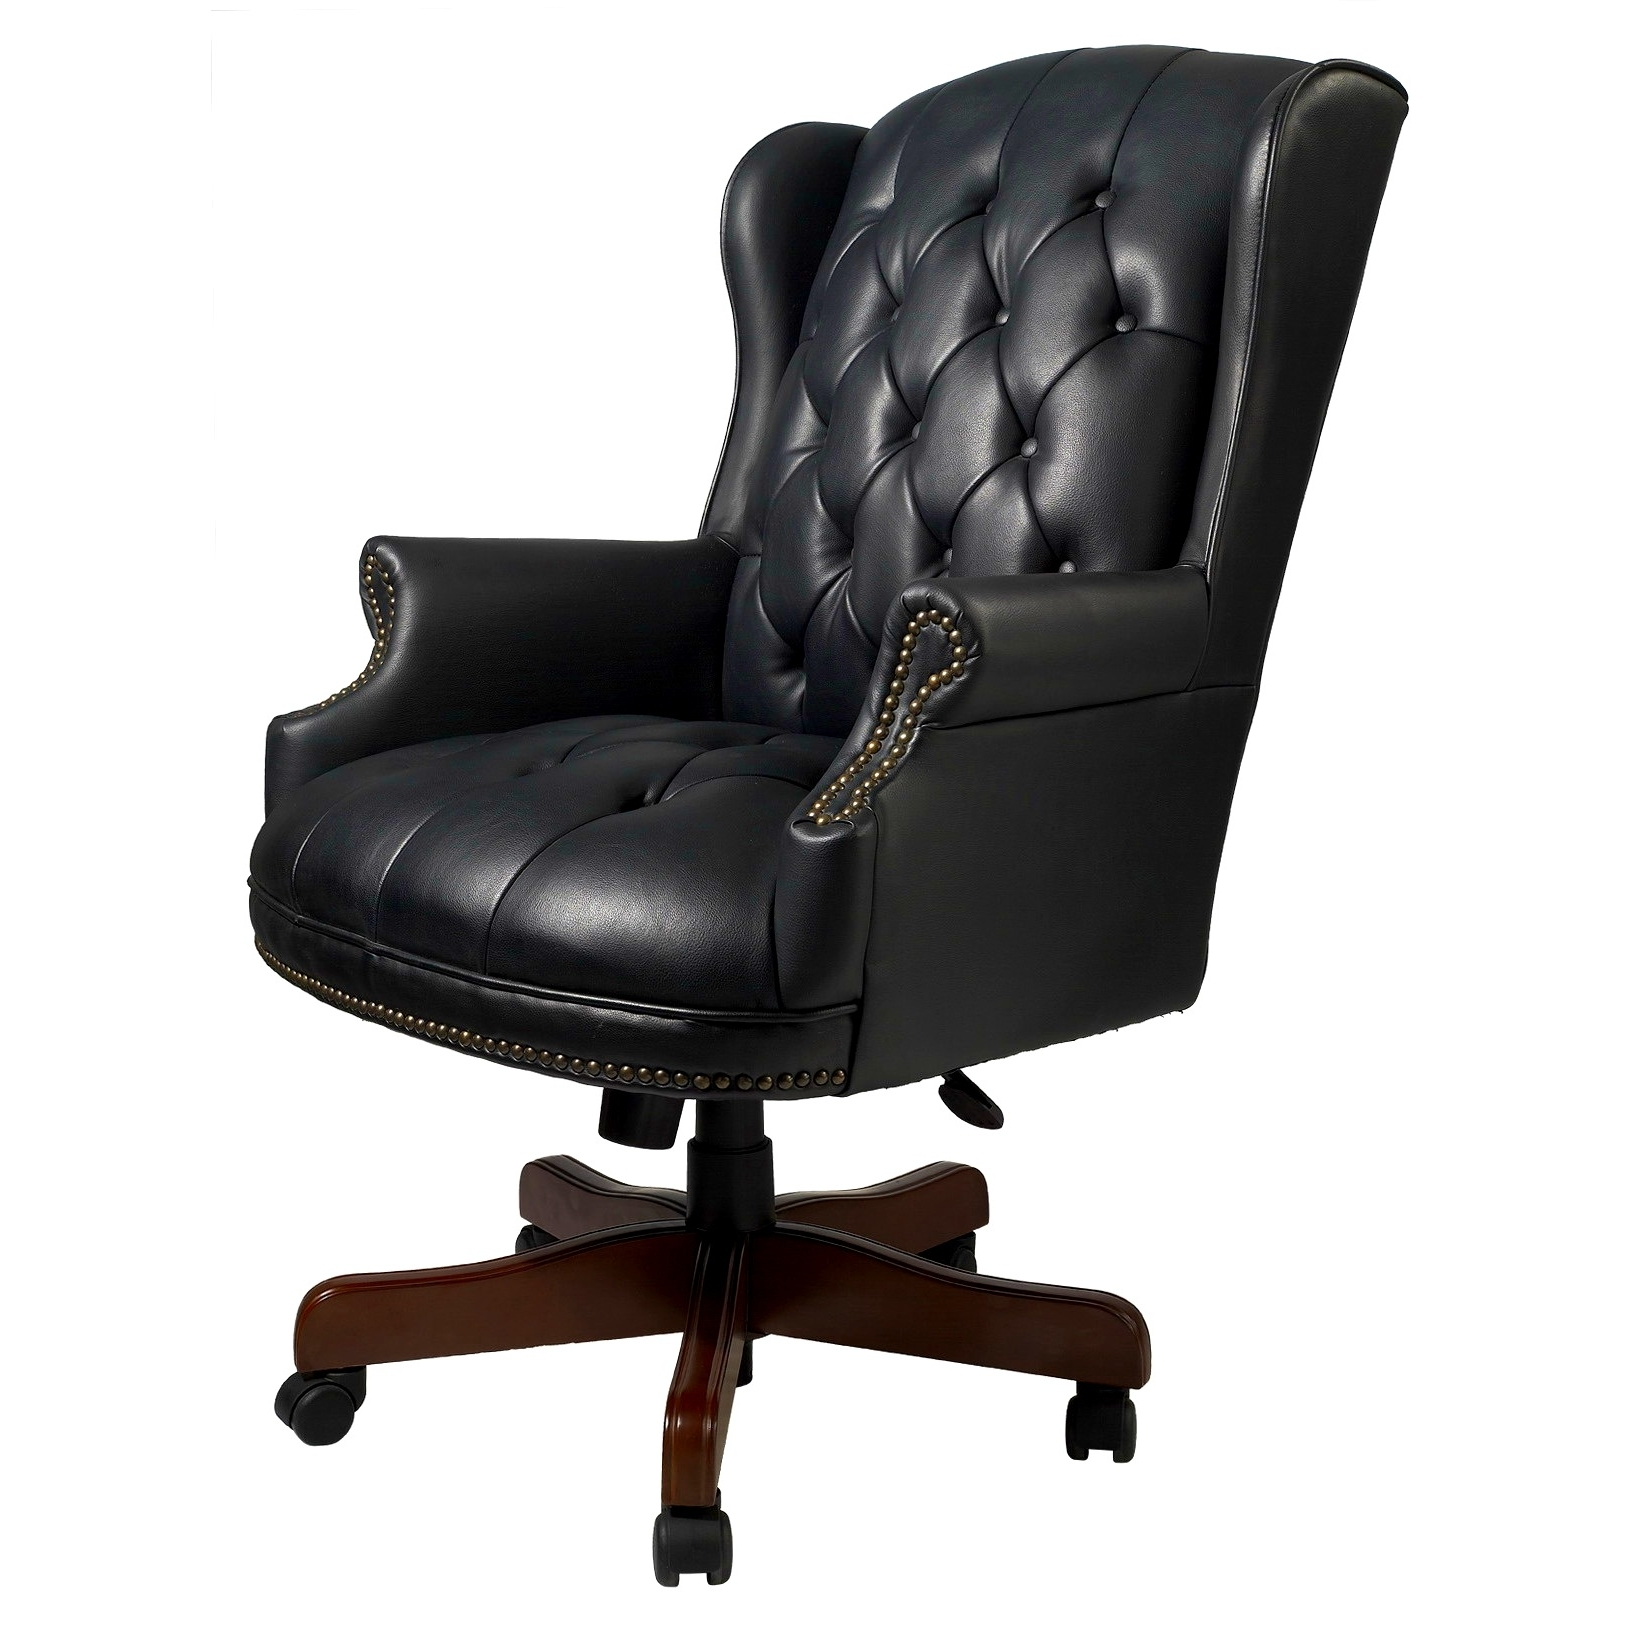 Quality Executive Office Chairs Pertaining To Famous Office Chairs Amazon Prime Tags : 77 Office Chairs Image Ideas  (View 13 of 20)